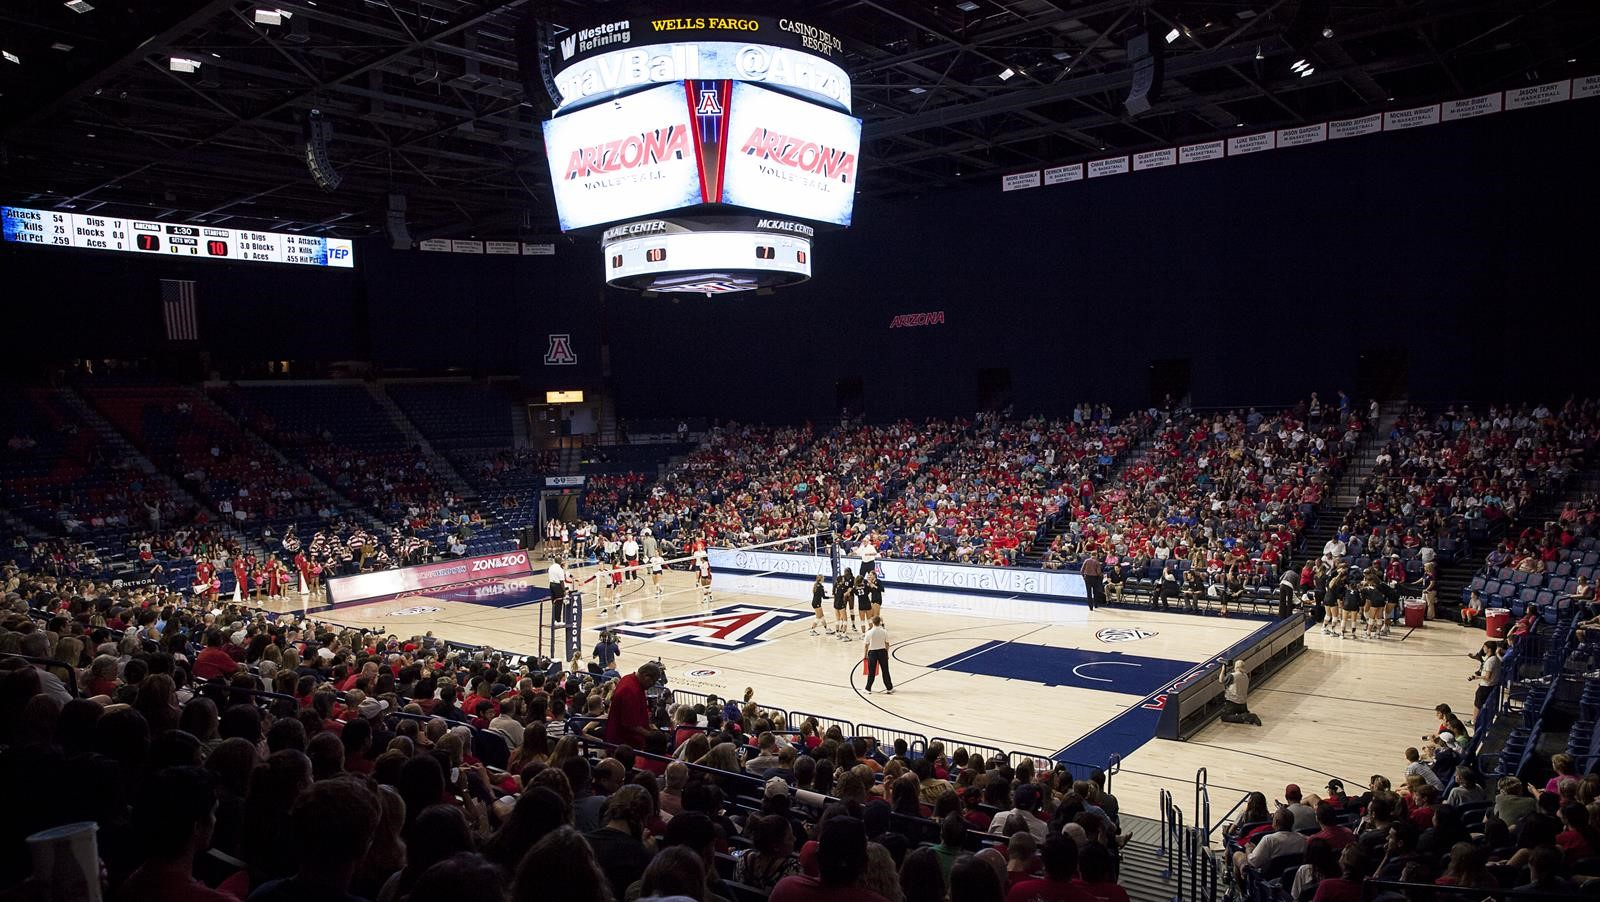 mckale memorial center (m/w basketball, volleyball and gymnastics